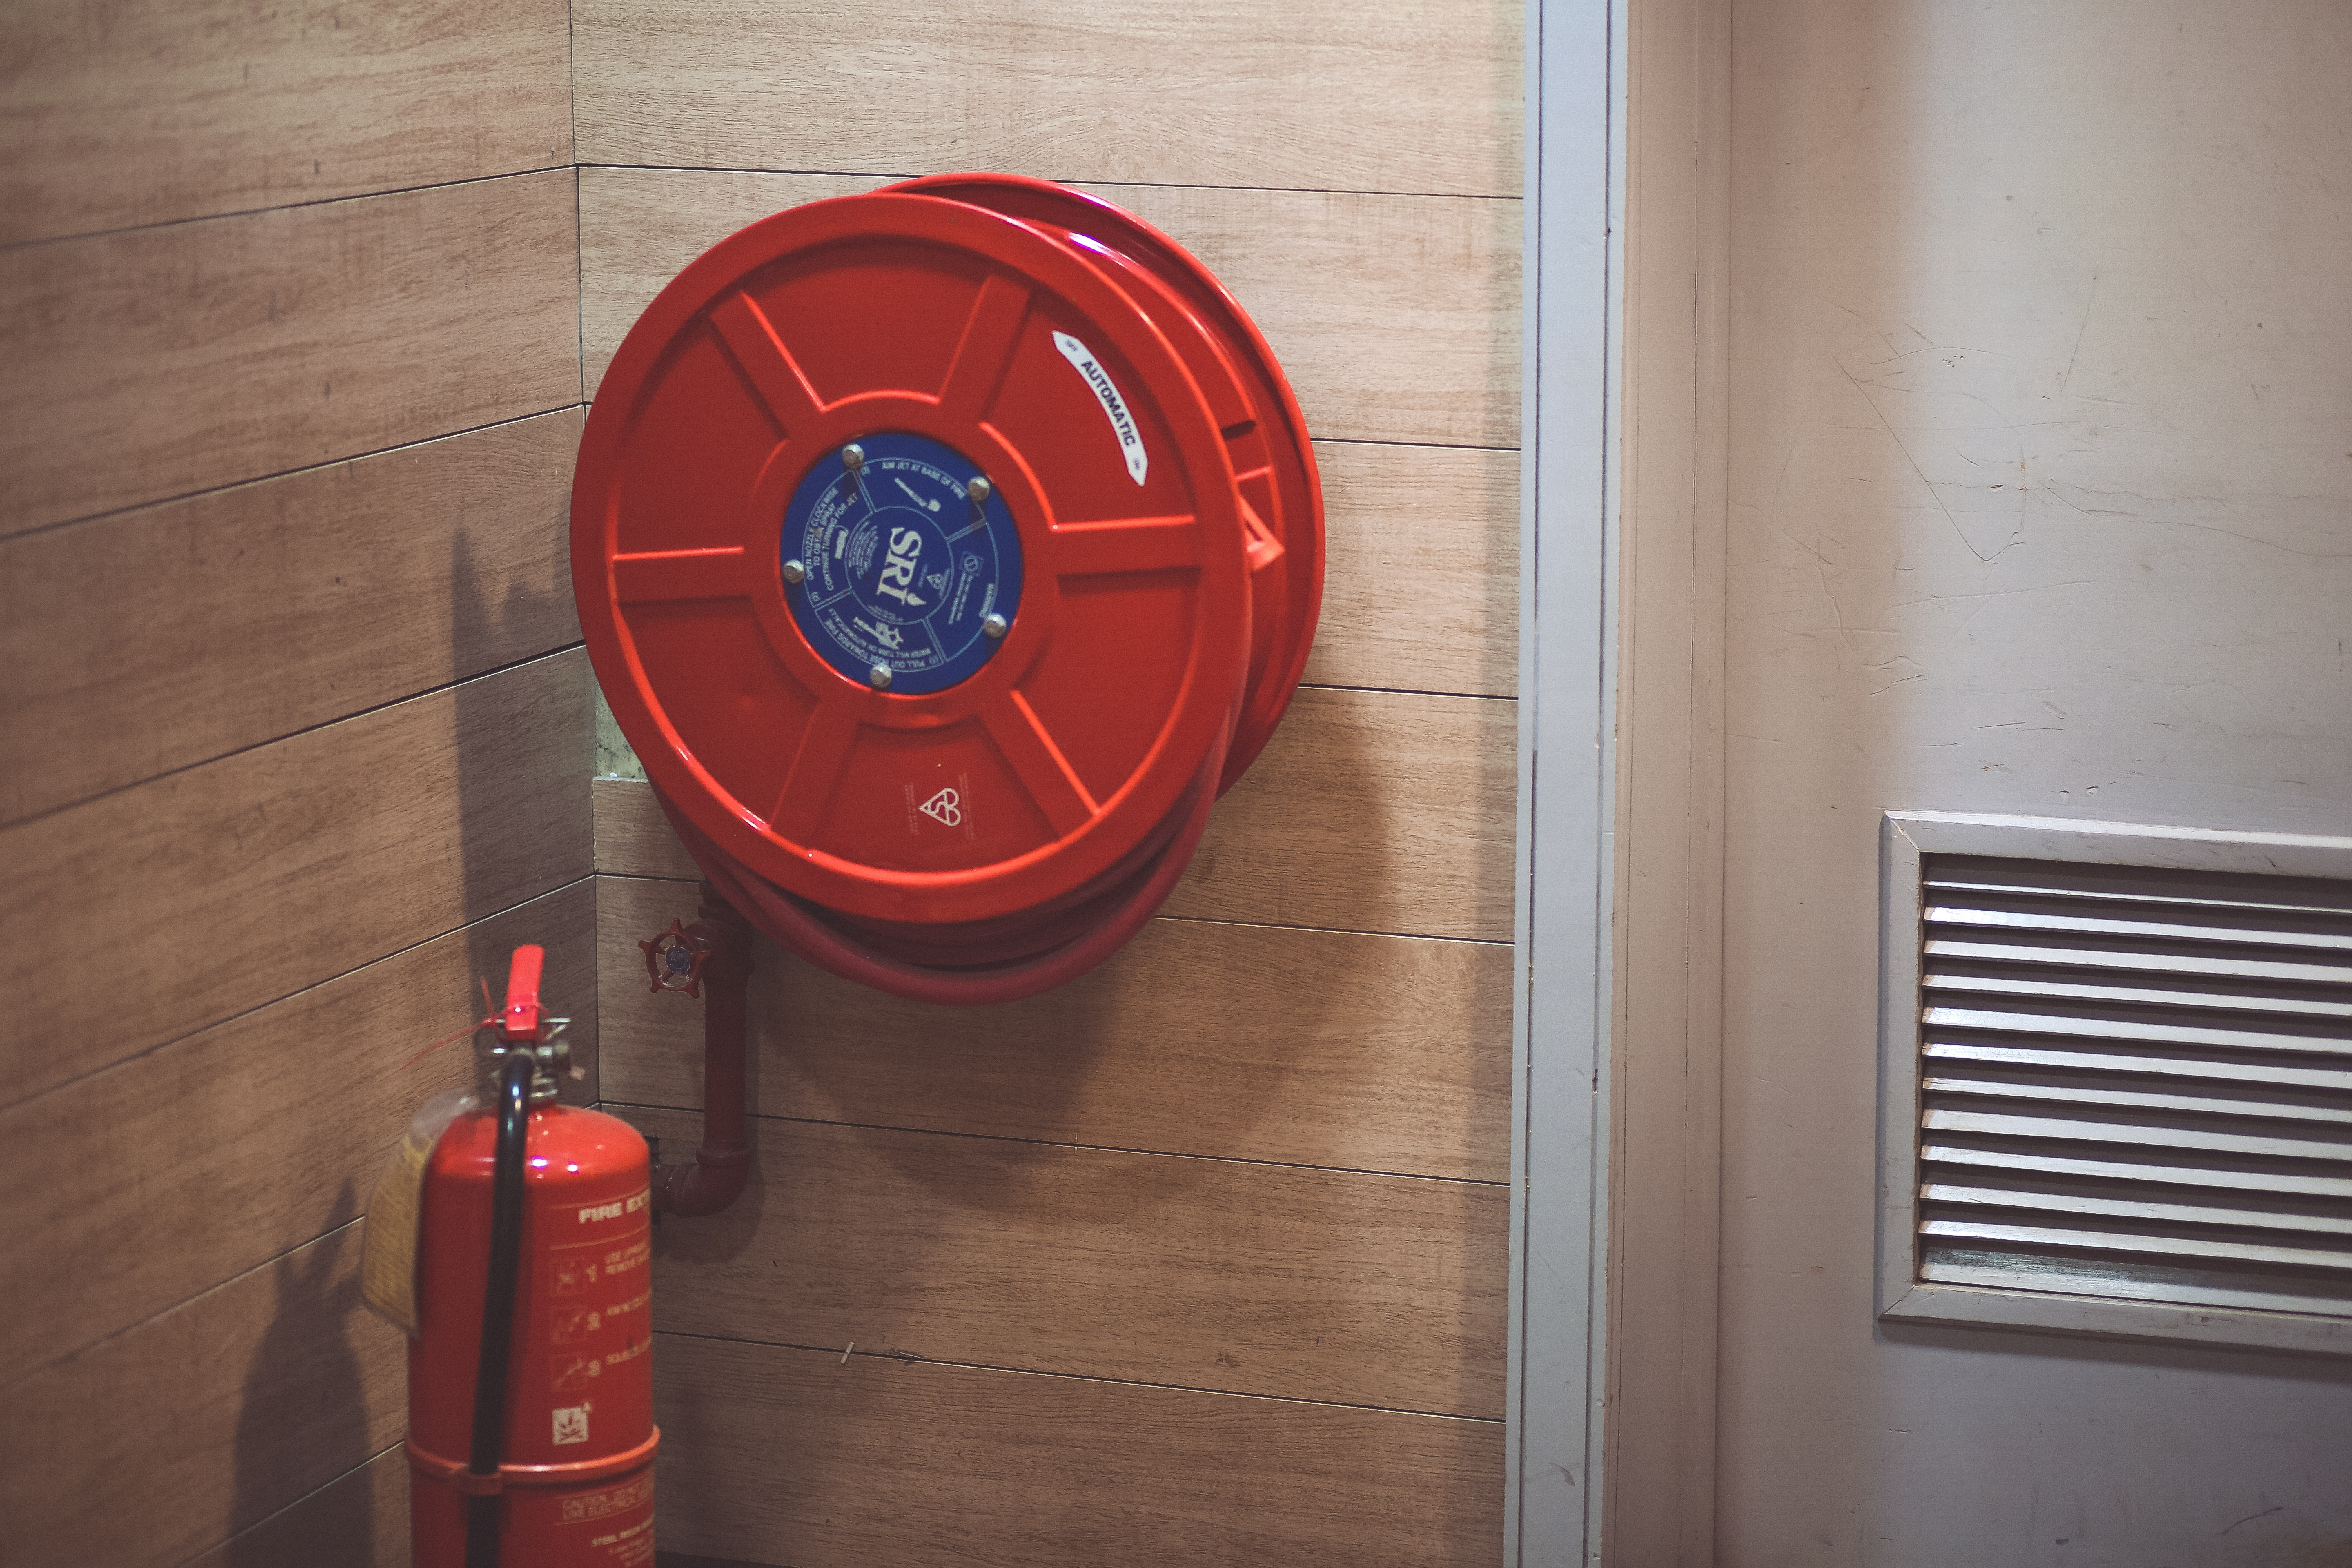 fire extinguisher and hose mounted on a building interior wall